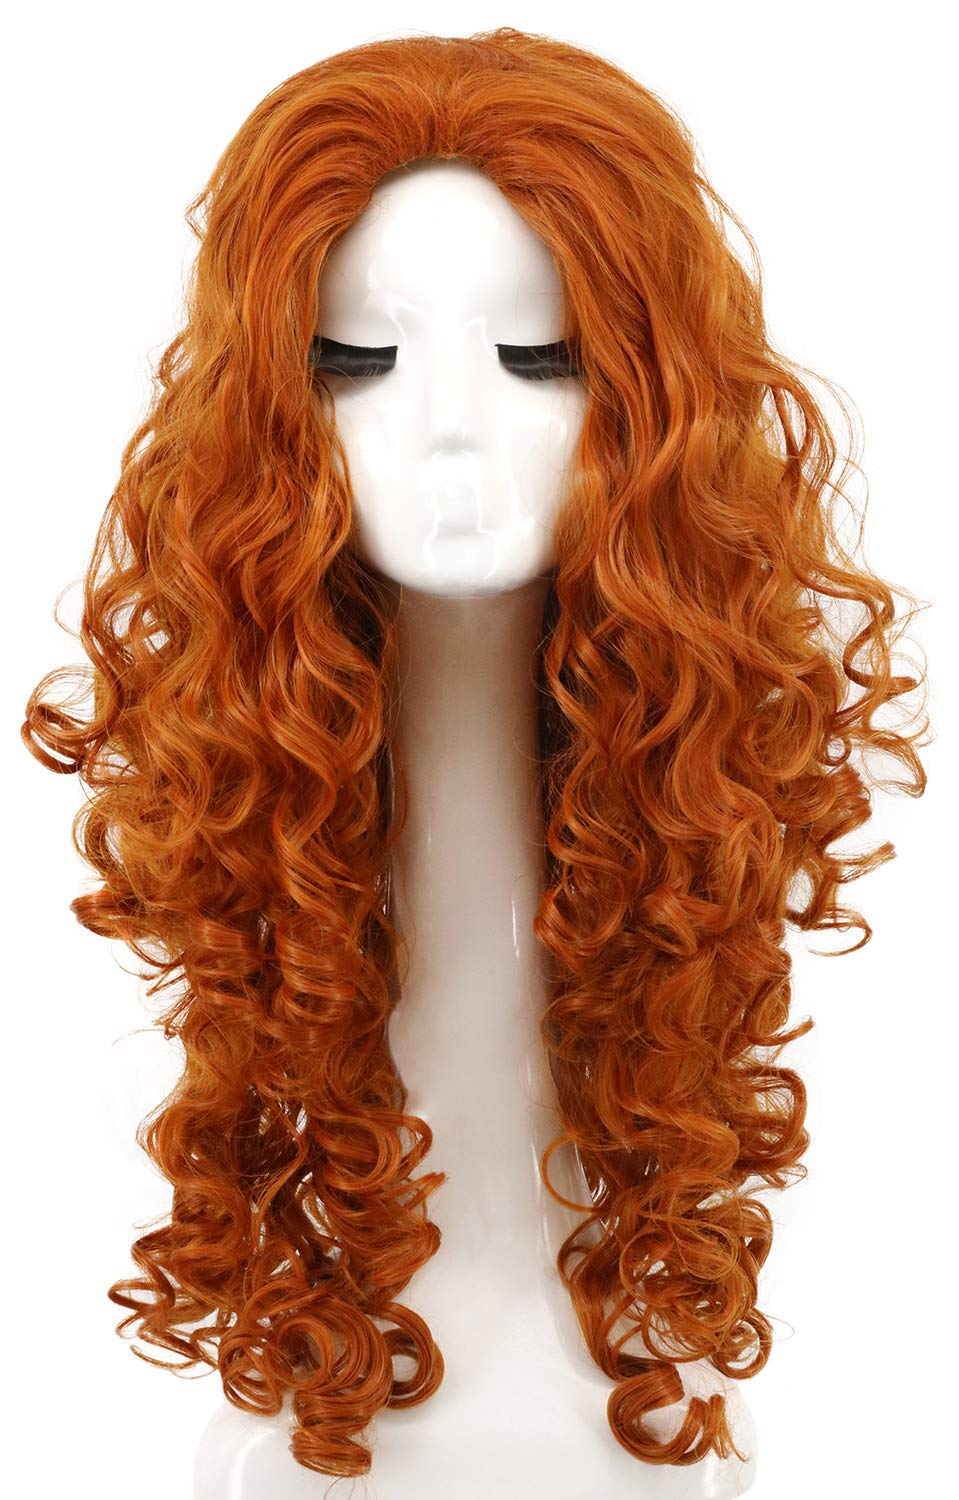 Yuehong Long Curly Orange Wig Same day shipping Costume Party Halloween Wigs Heat Quality inspection